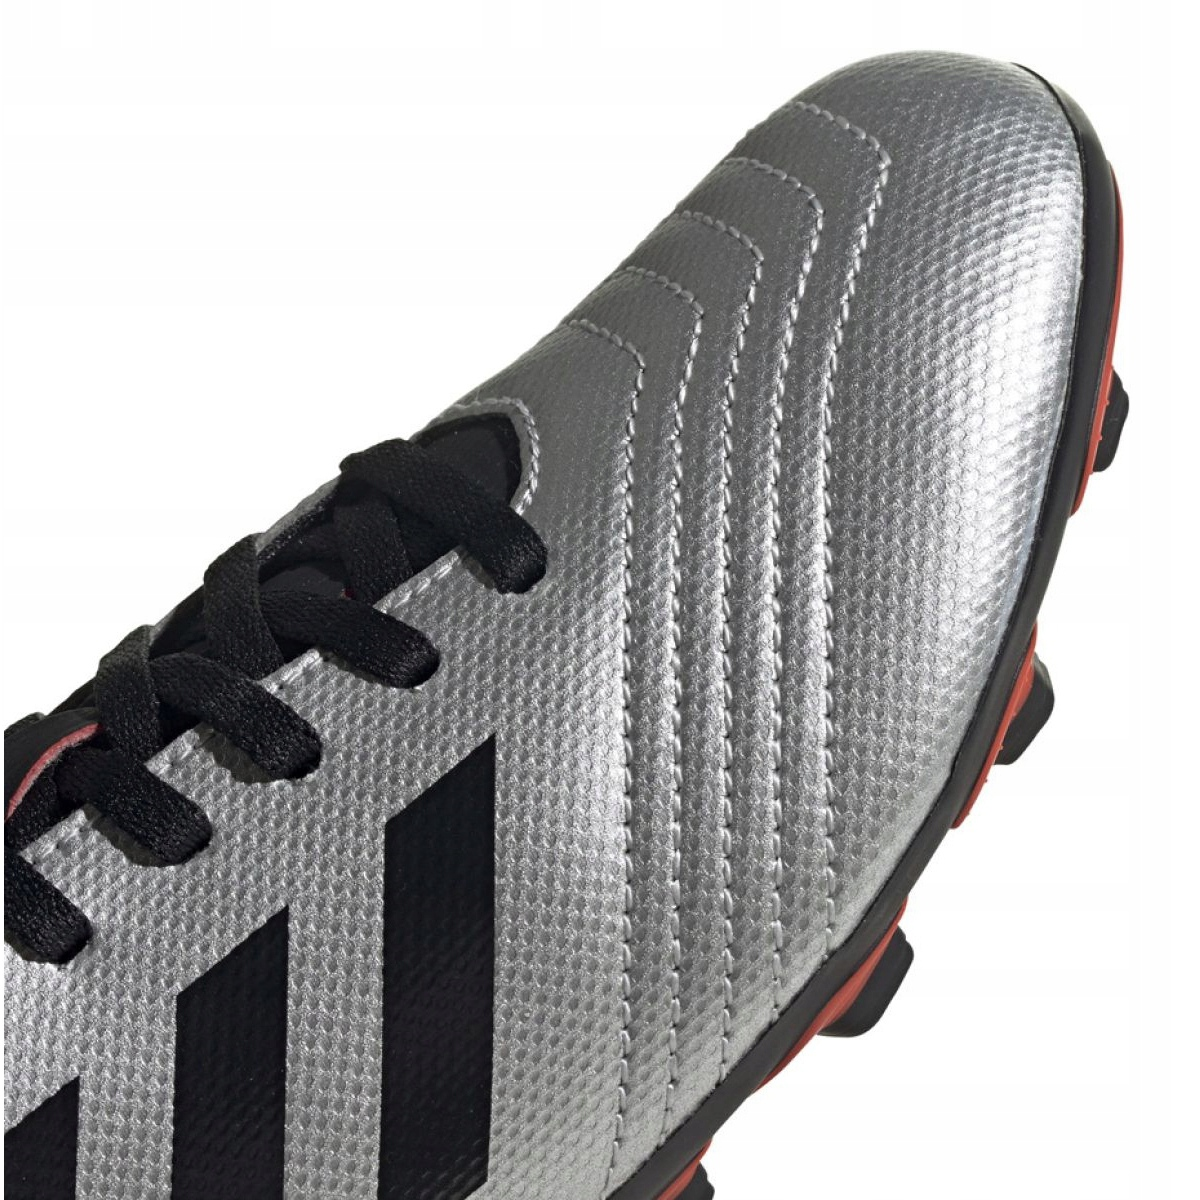 Details about Football boots adidas Predator 19.4 FxG Jr G25822 silver gray silver